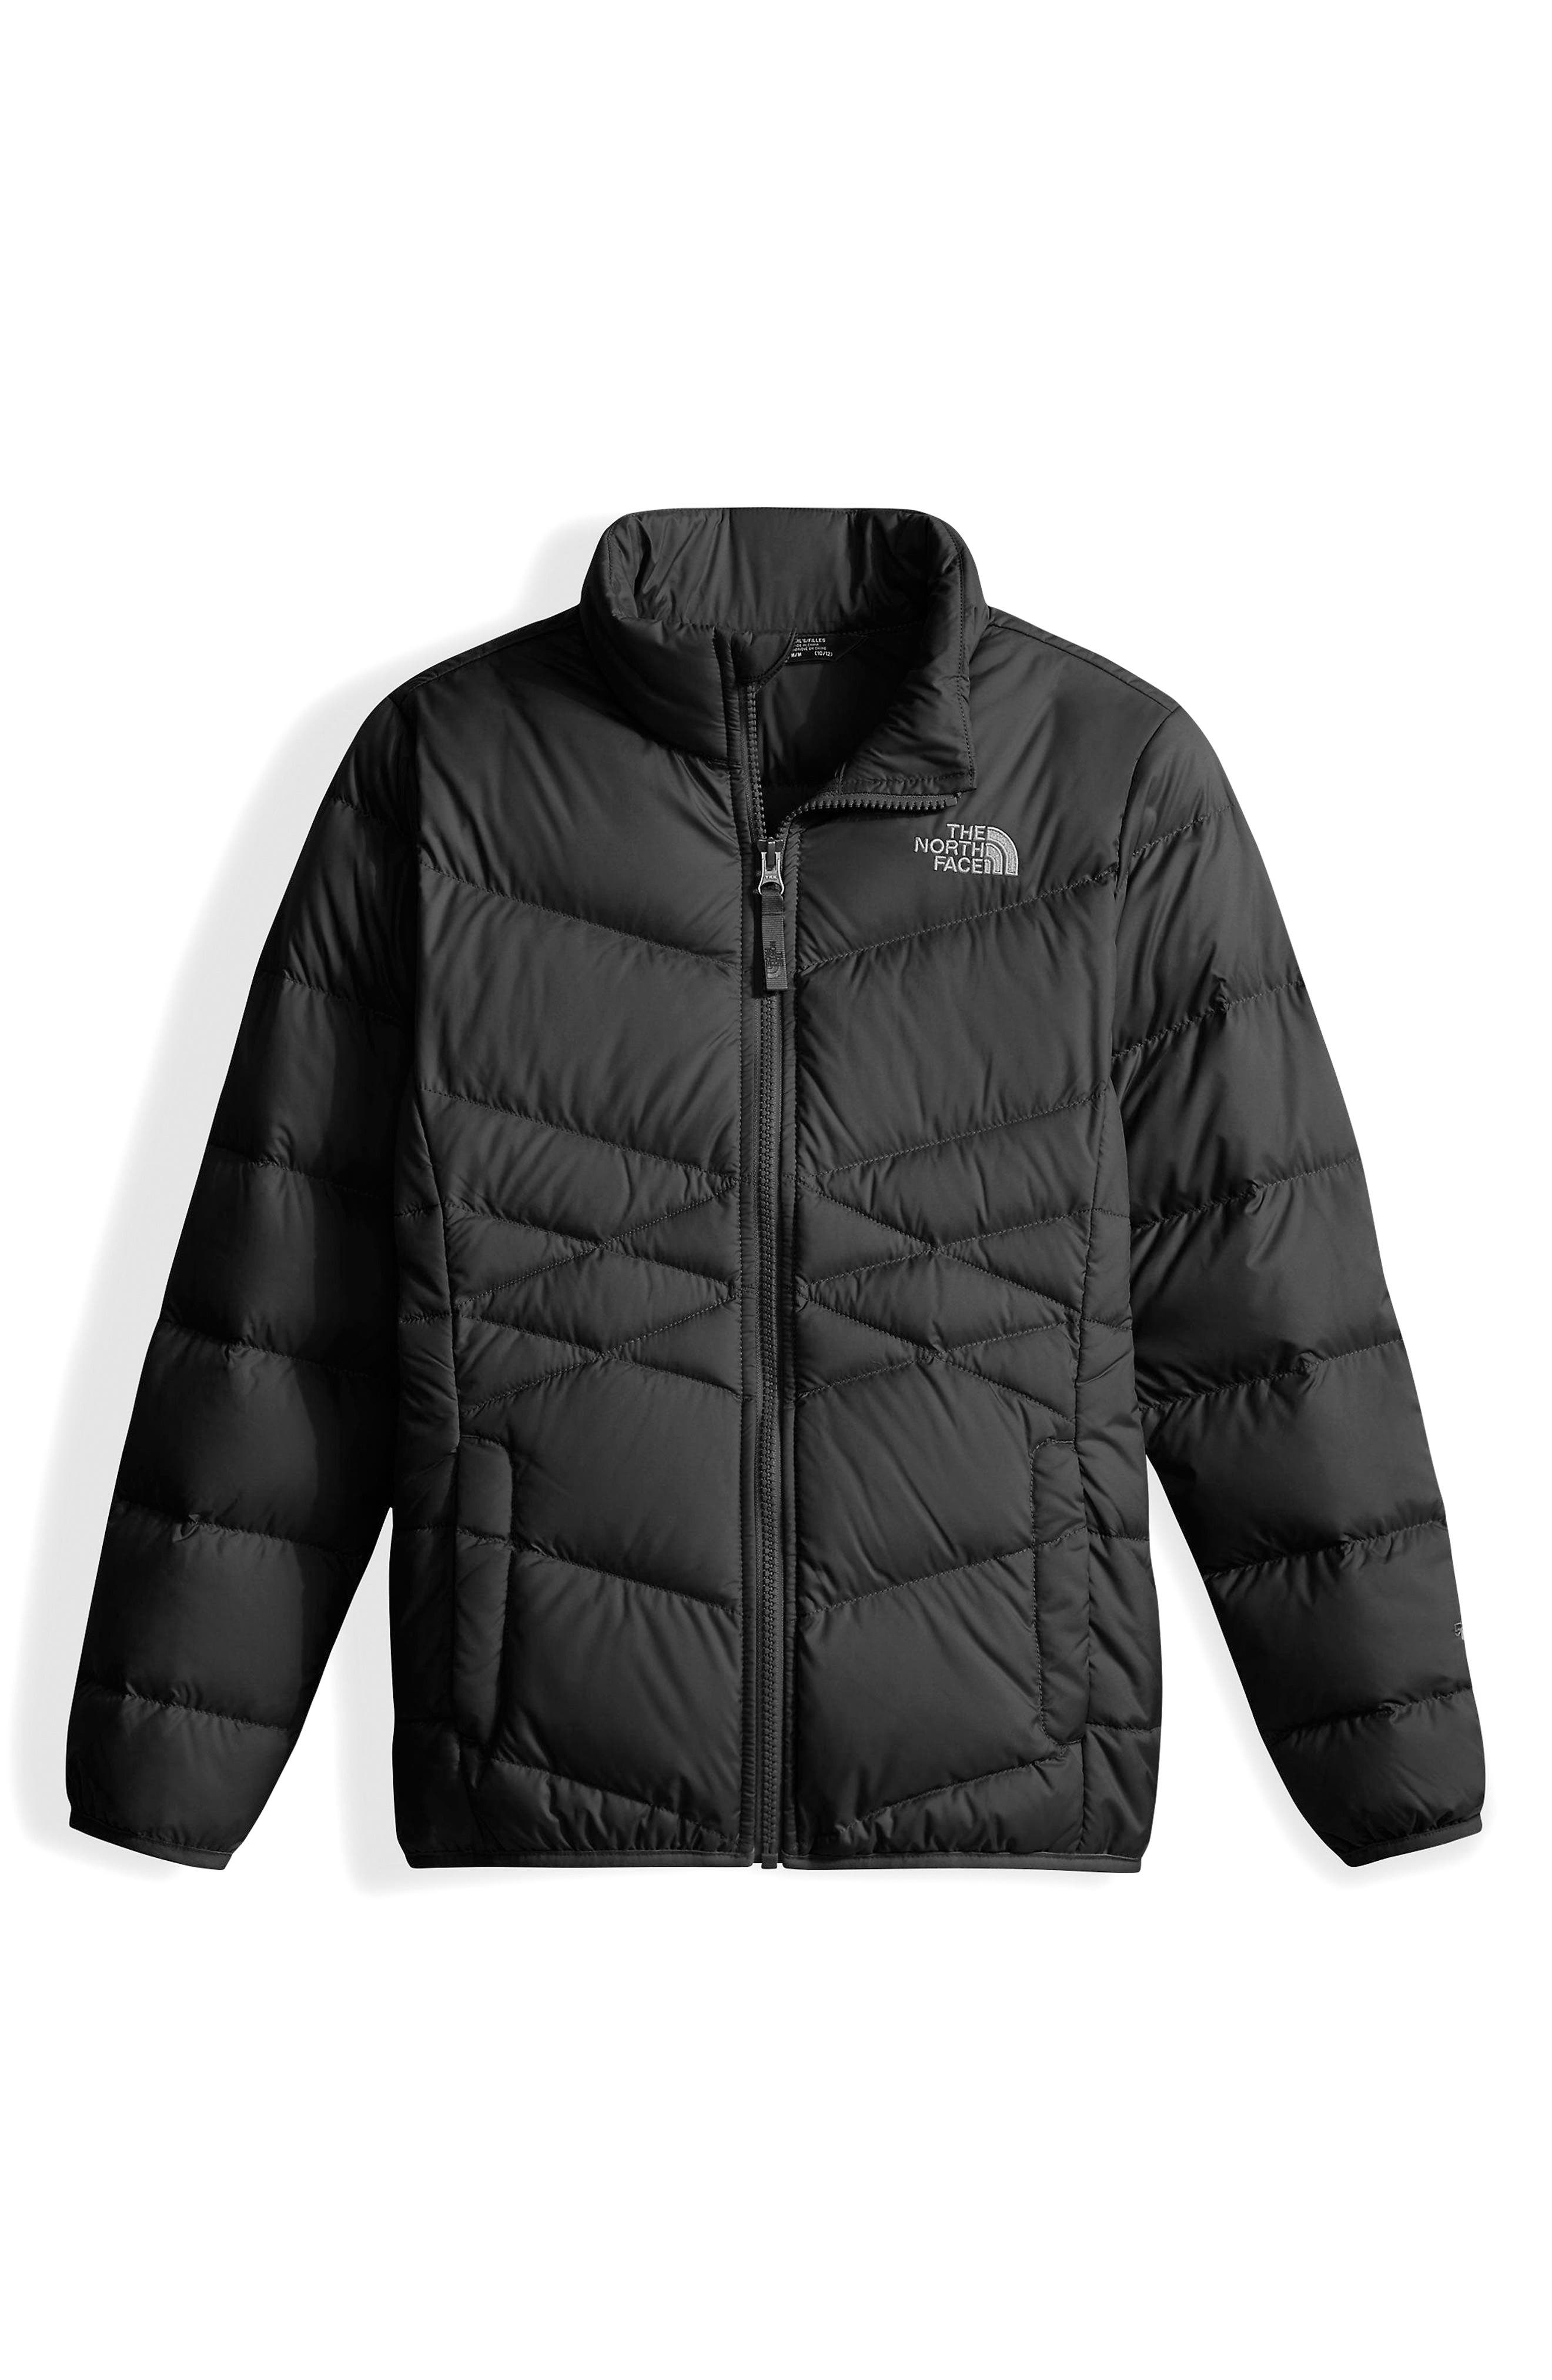 Andes Water Resistant Down Jacket,                         Main,                         color, Tnf Black